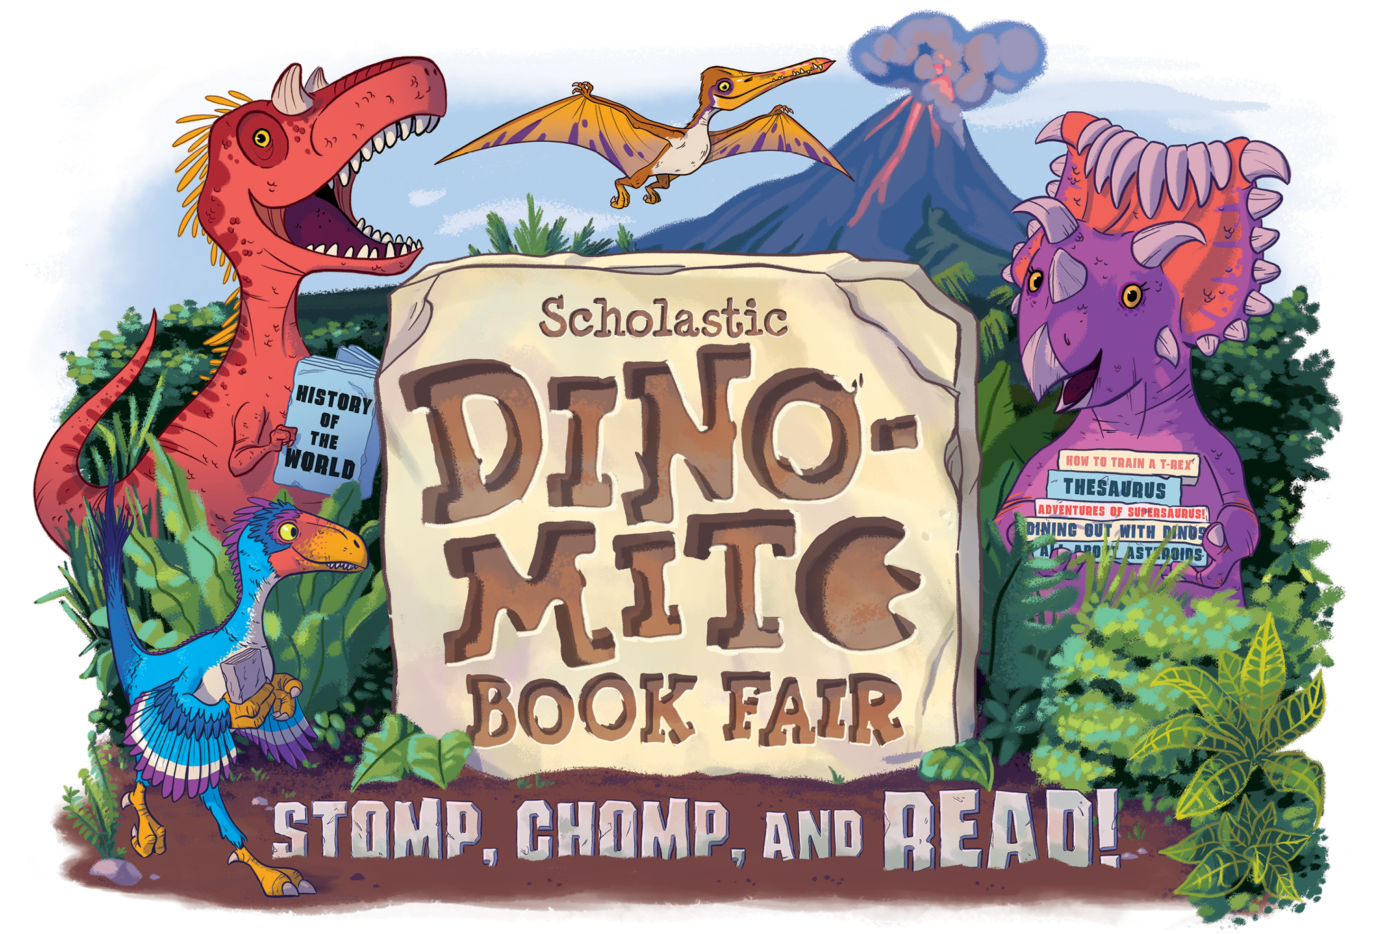 BOGO BOOK FAIR APRIL 9-11